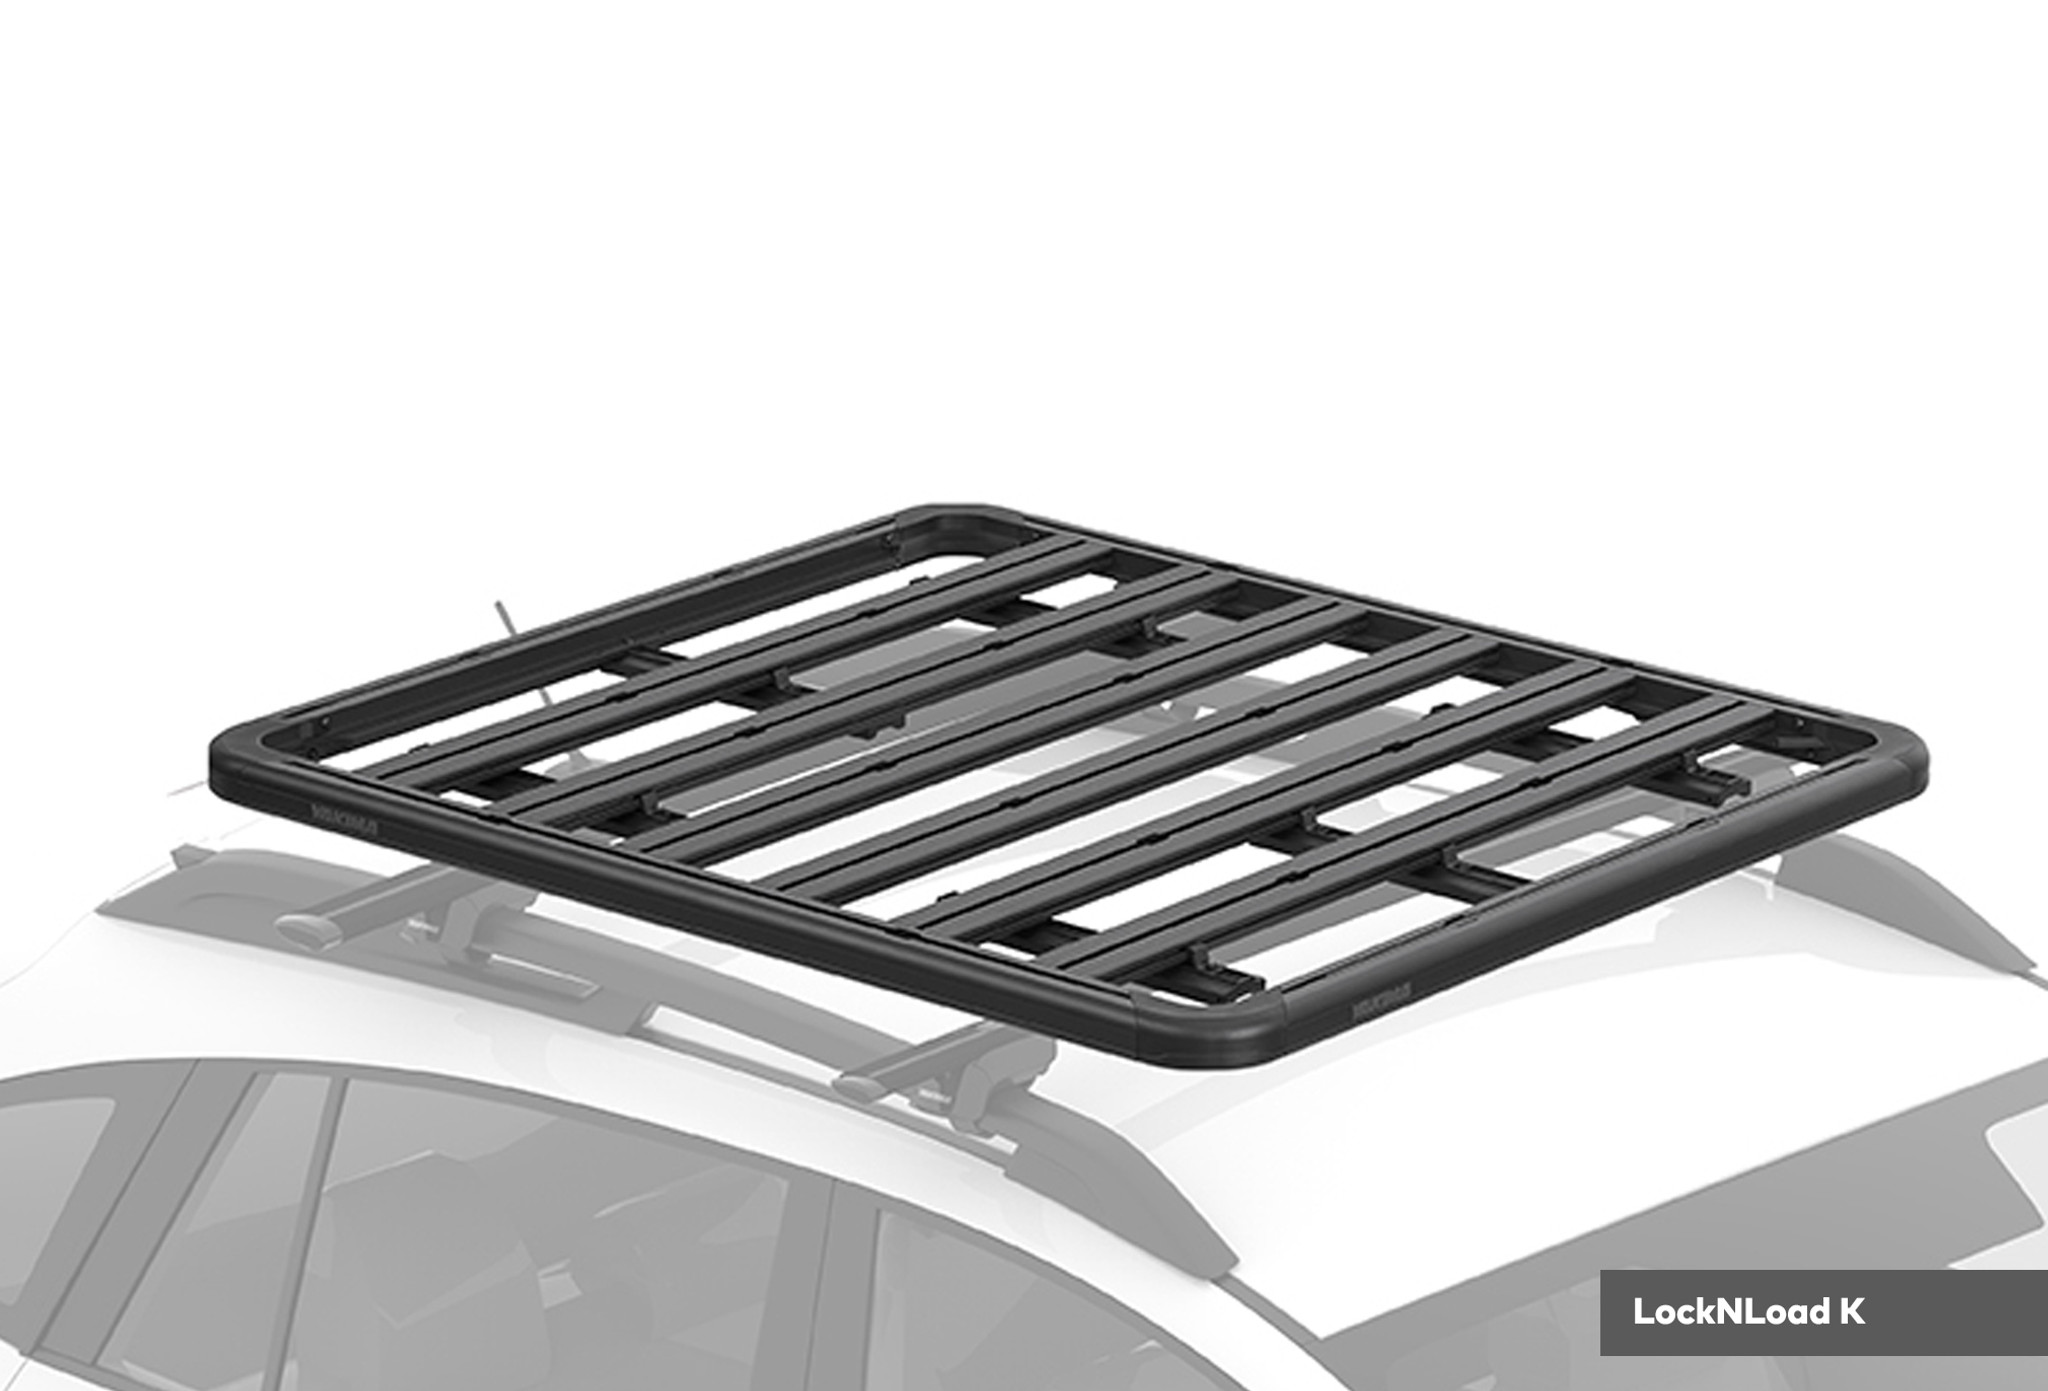 LockNLoad SL Adapter YAKIMA Attaches Platform to Skyline and Timberline Towers, Set of 2